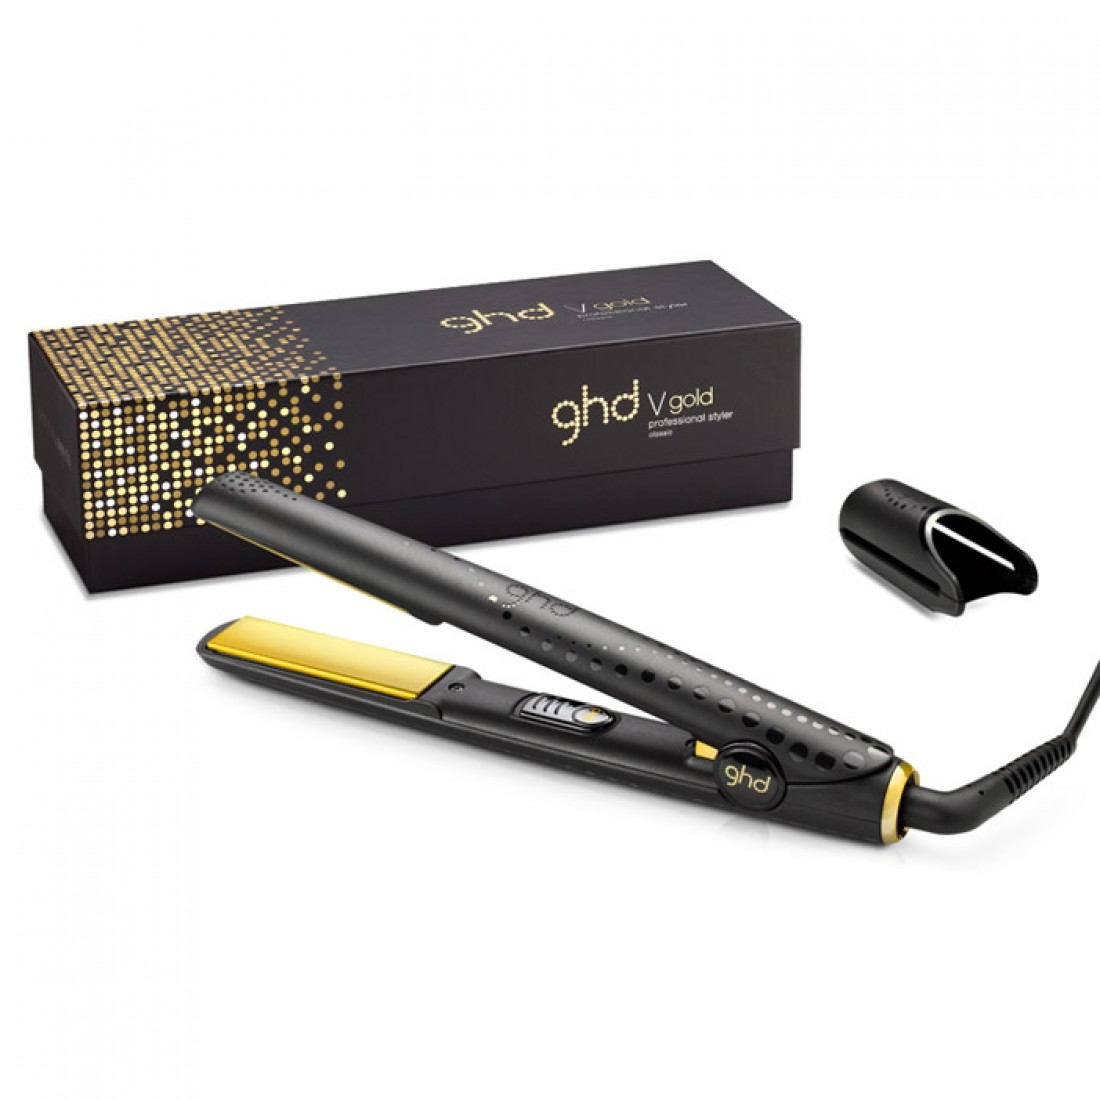 ghd styler gold classic